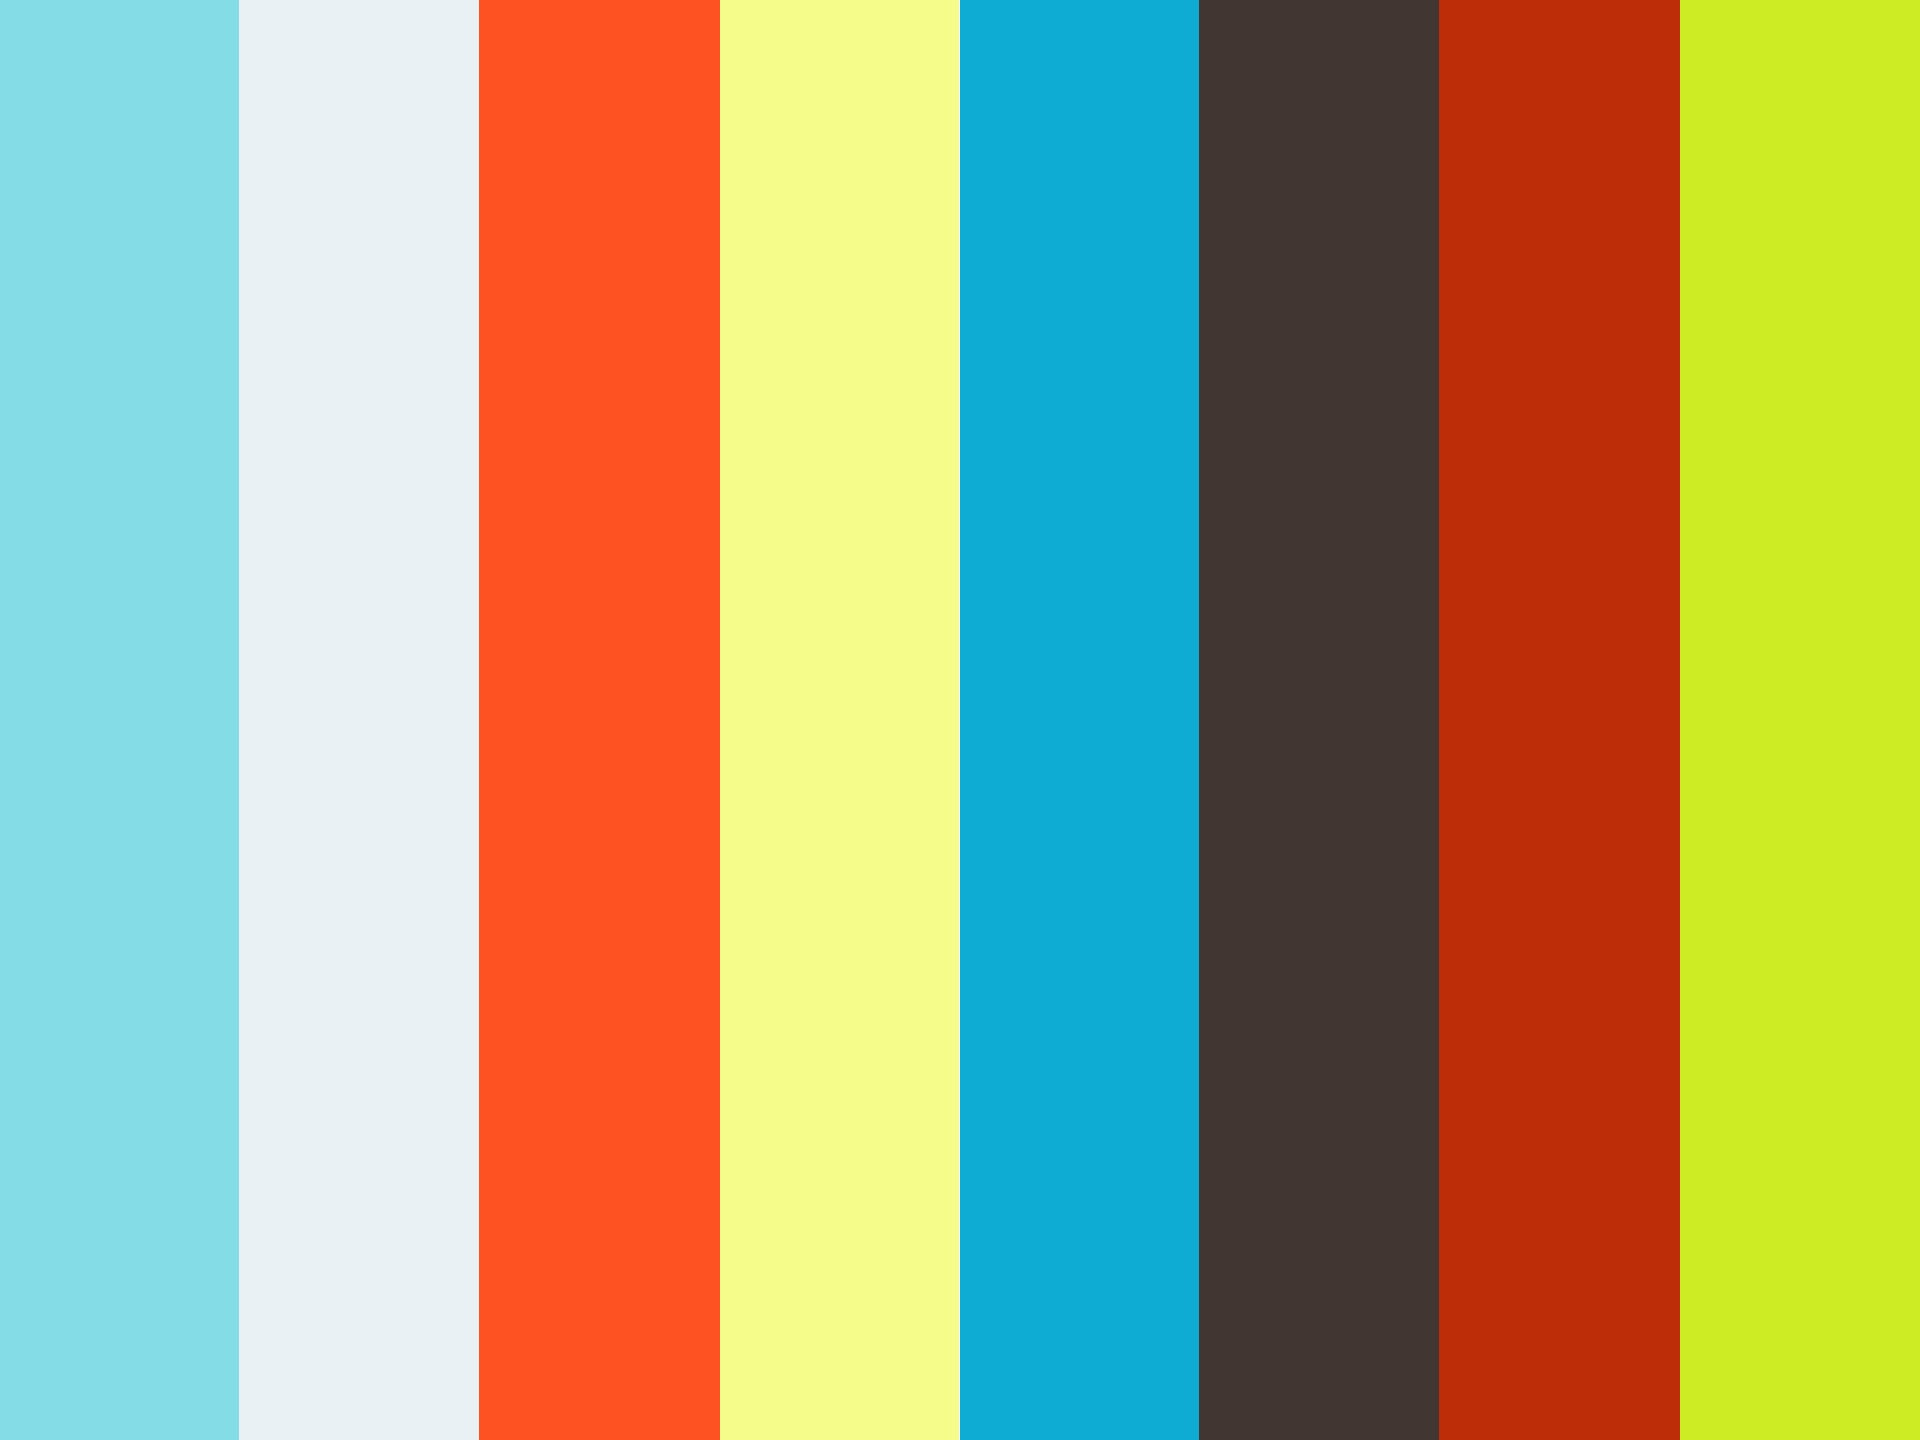 Accuracy of Preoperative Magnetic Resonance Imaging in Prediction of Pathological Stage in Rectal Cancer: Node-for- Node Matched Histologic Validation of MRI Imaging Features 2013